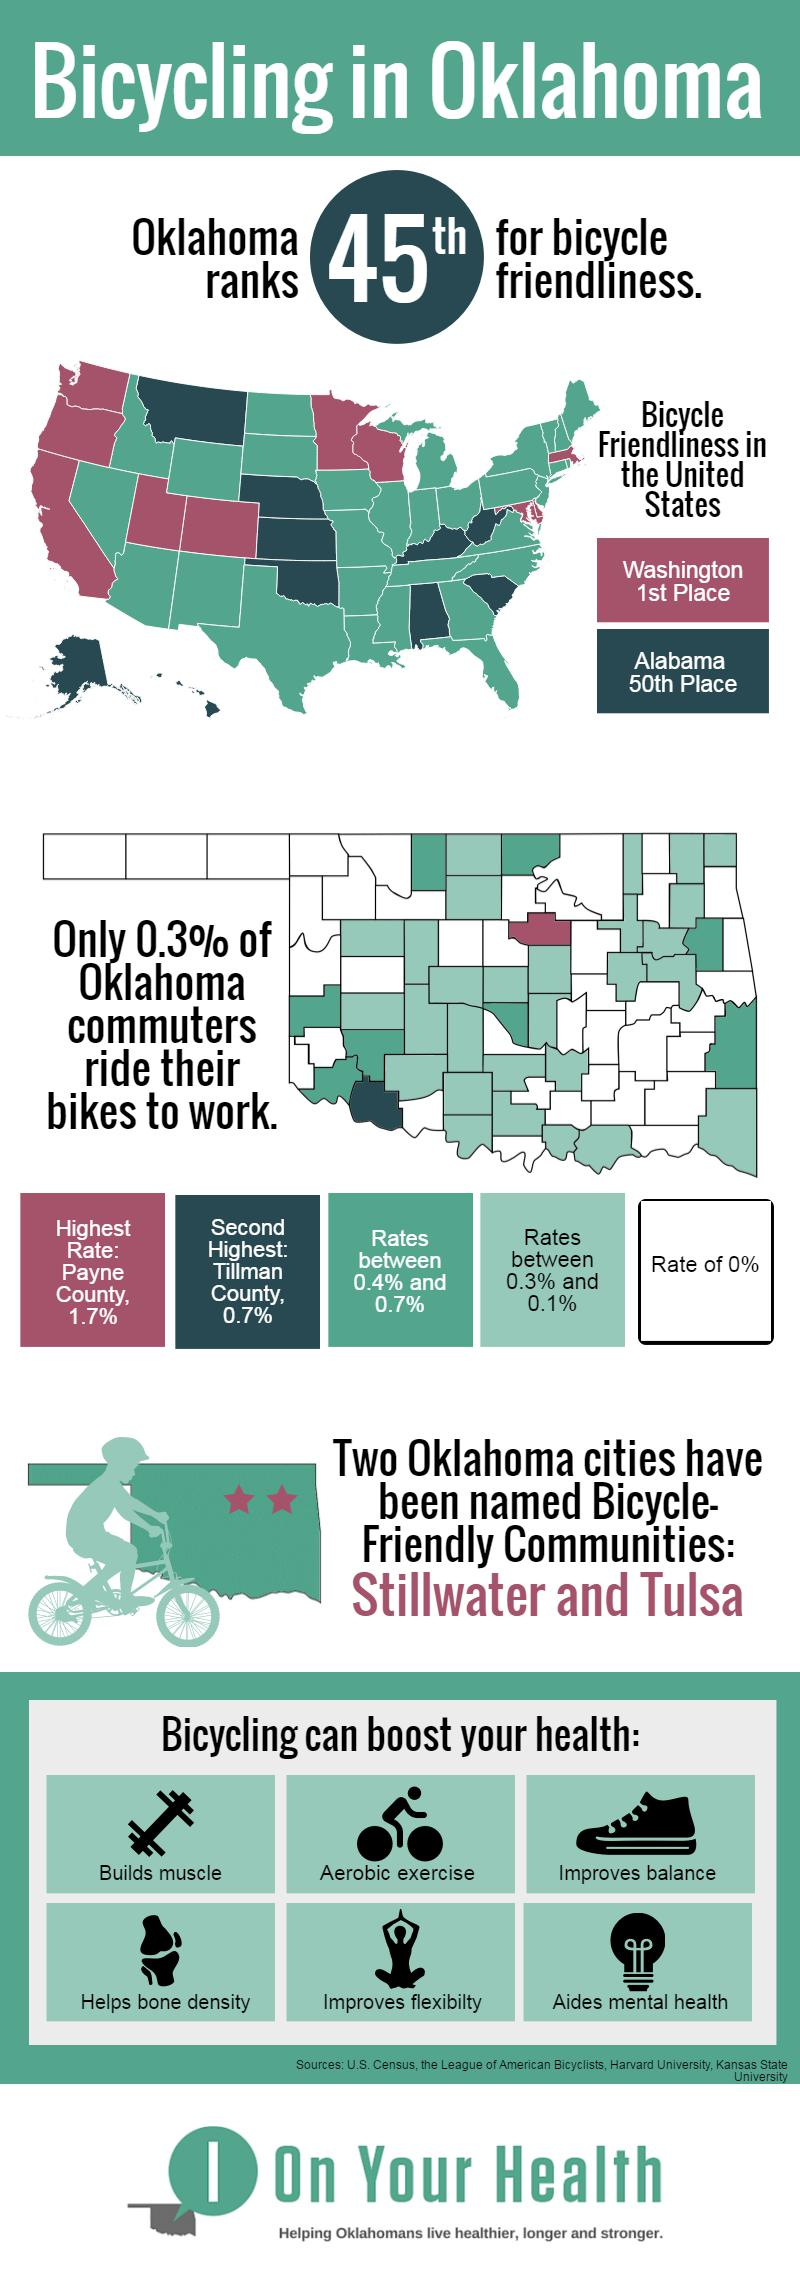 Graphic about bicycling in Oklahoma